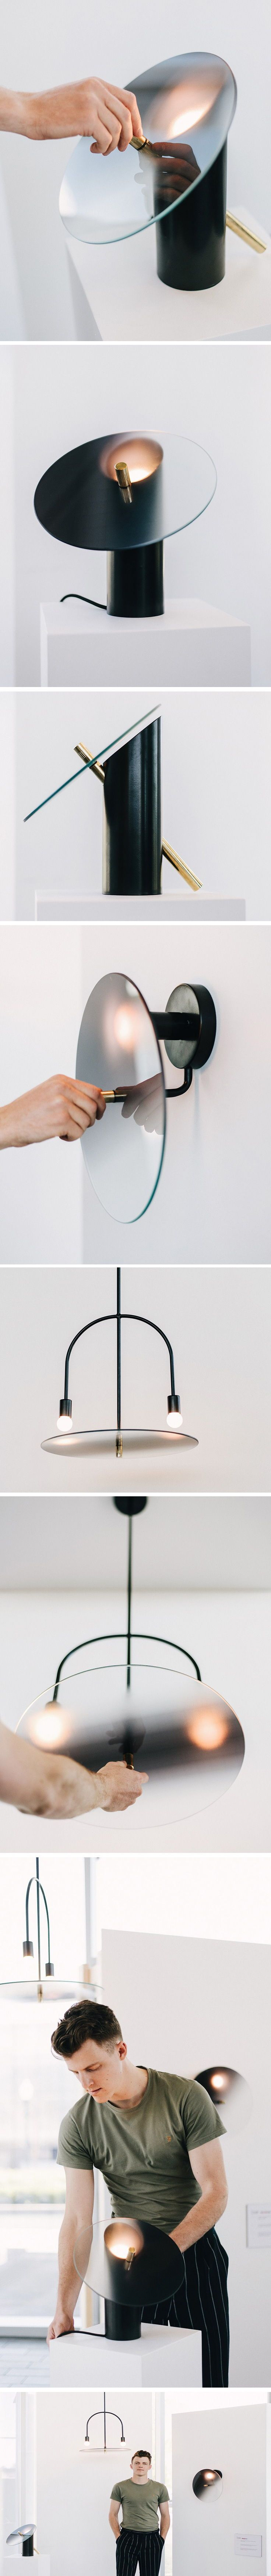 The Tinge series of lamps by Jacob Starkley are si…